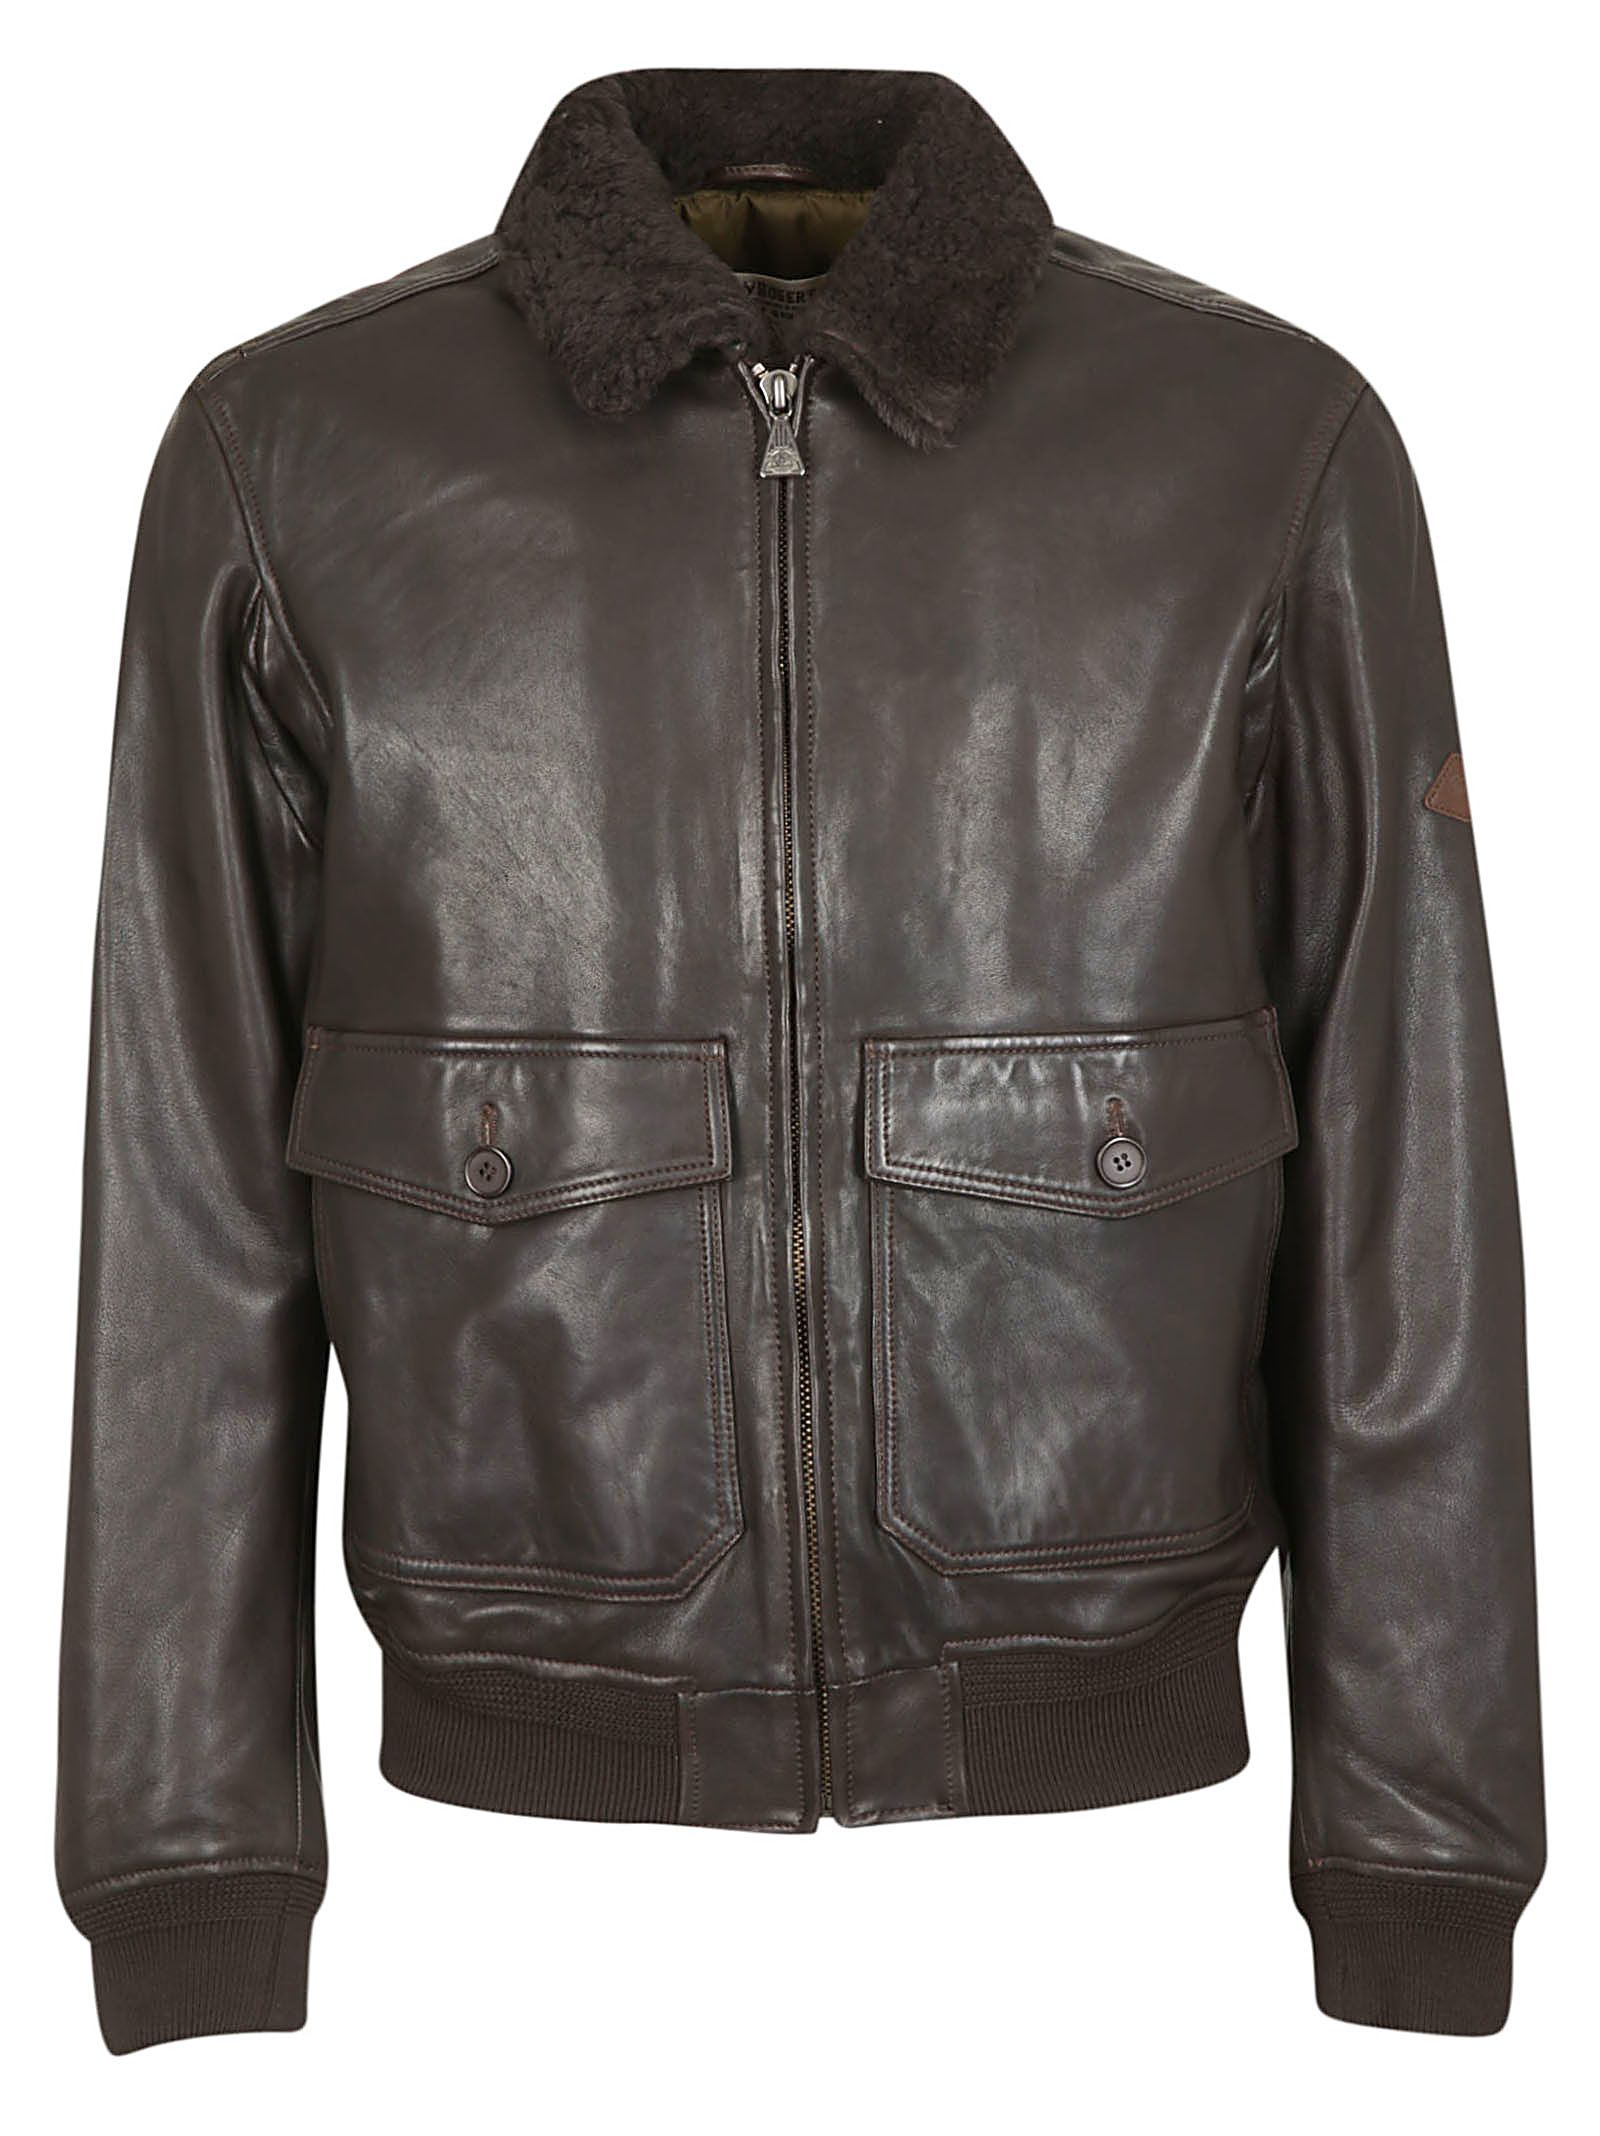 ROY ROGERS Zipped Leather Jacket in Moro